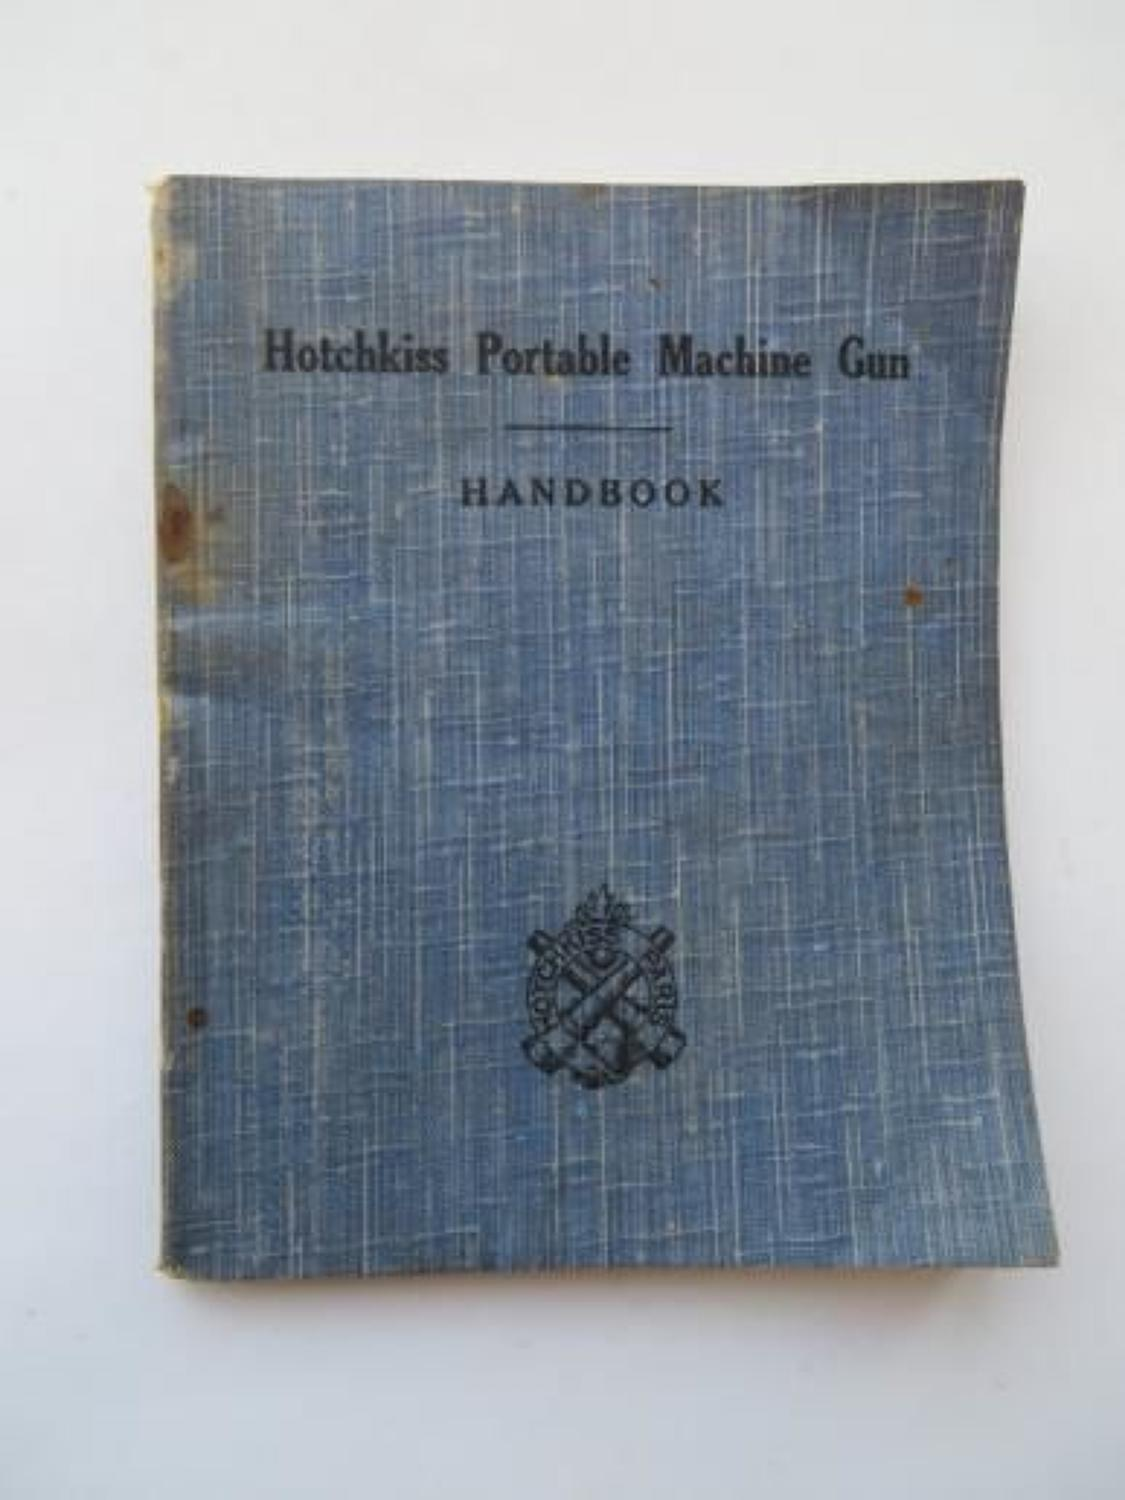 WW1 Period Hotchkiss Portable Machine Gun Booklet